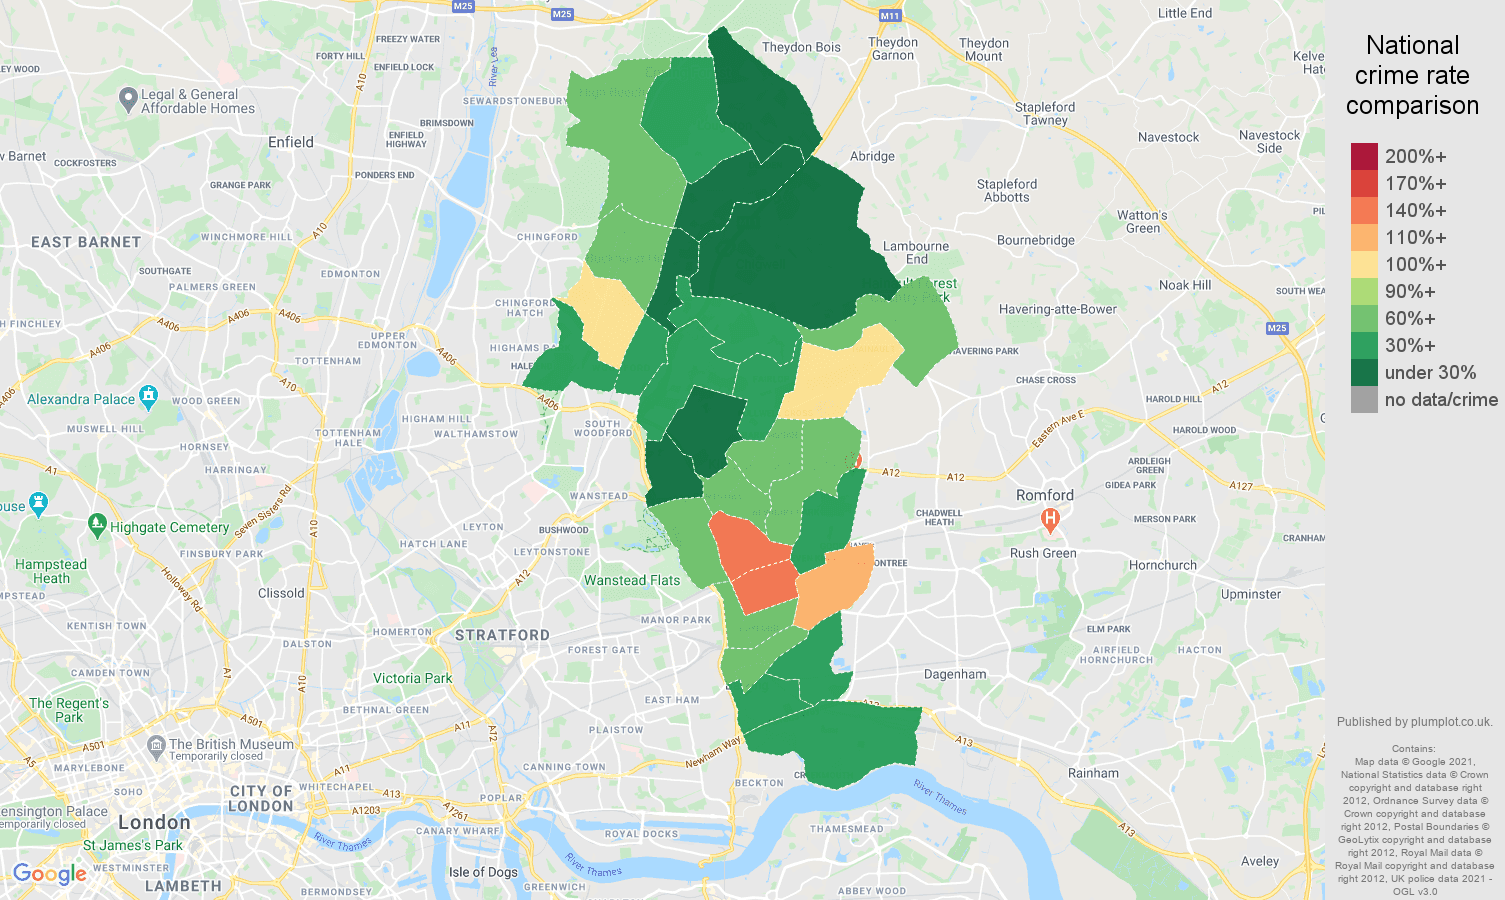 Ilford bicycle theft crime rate comparison map